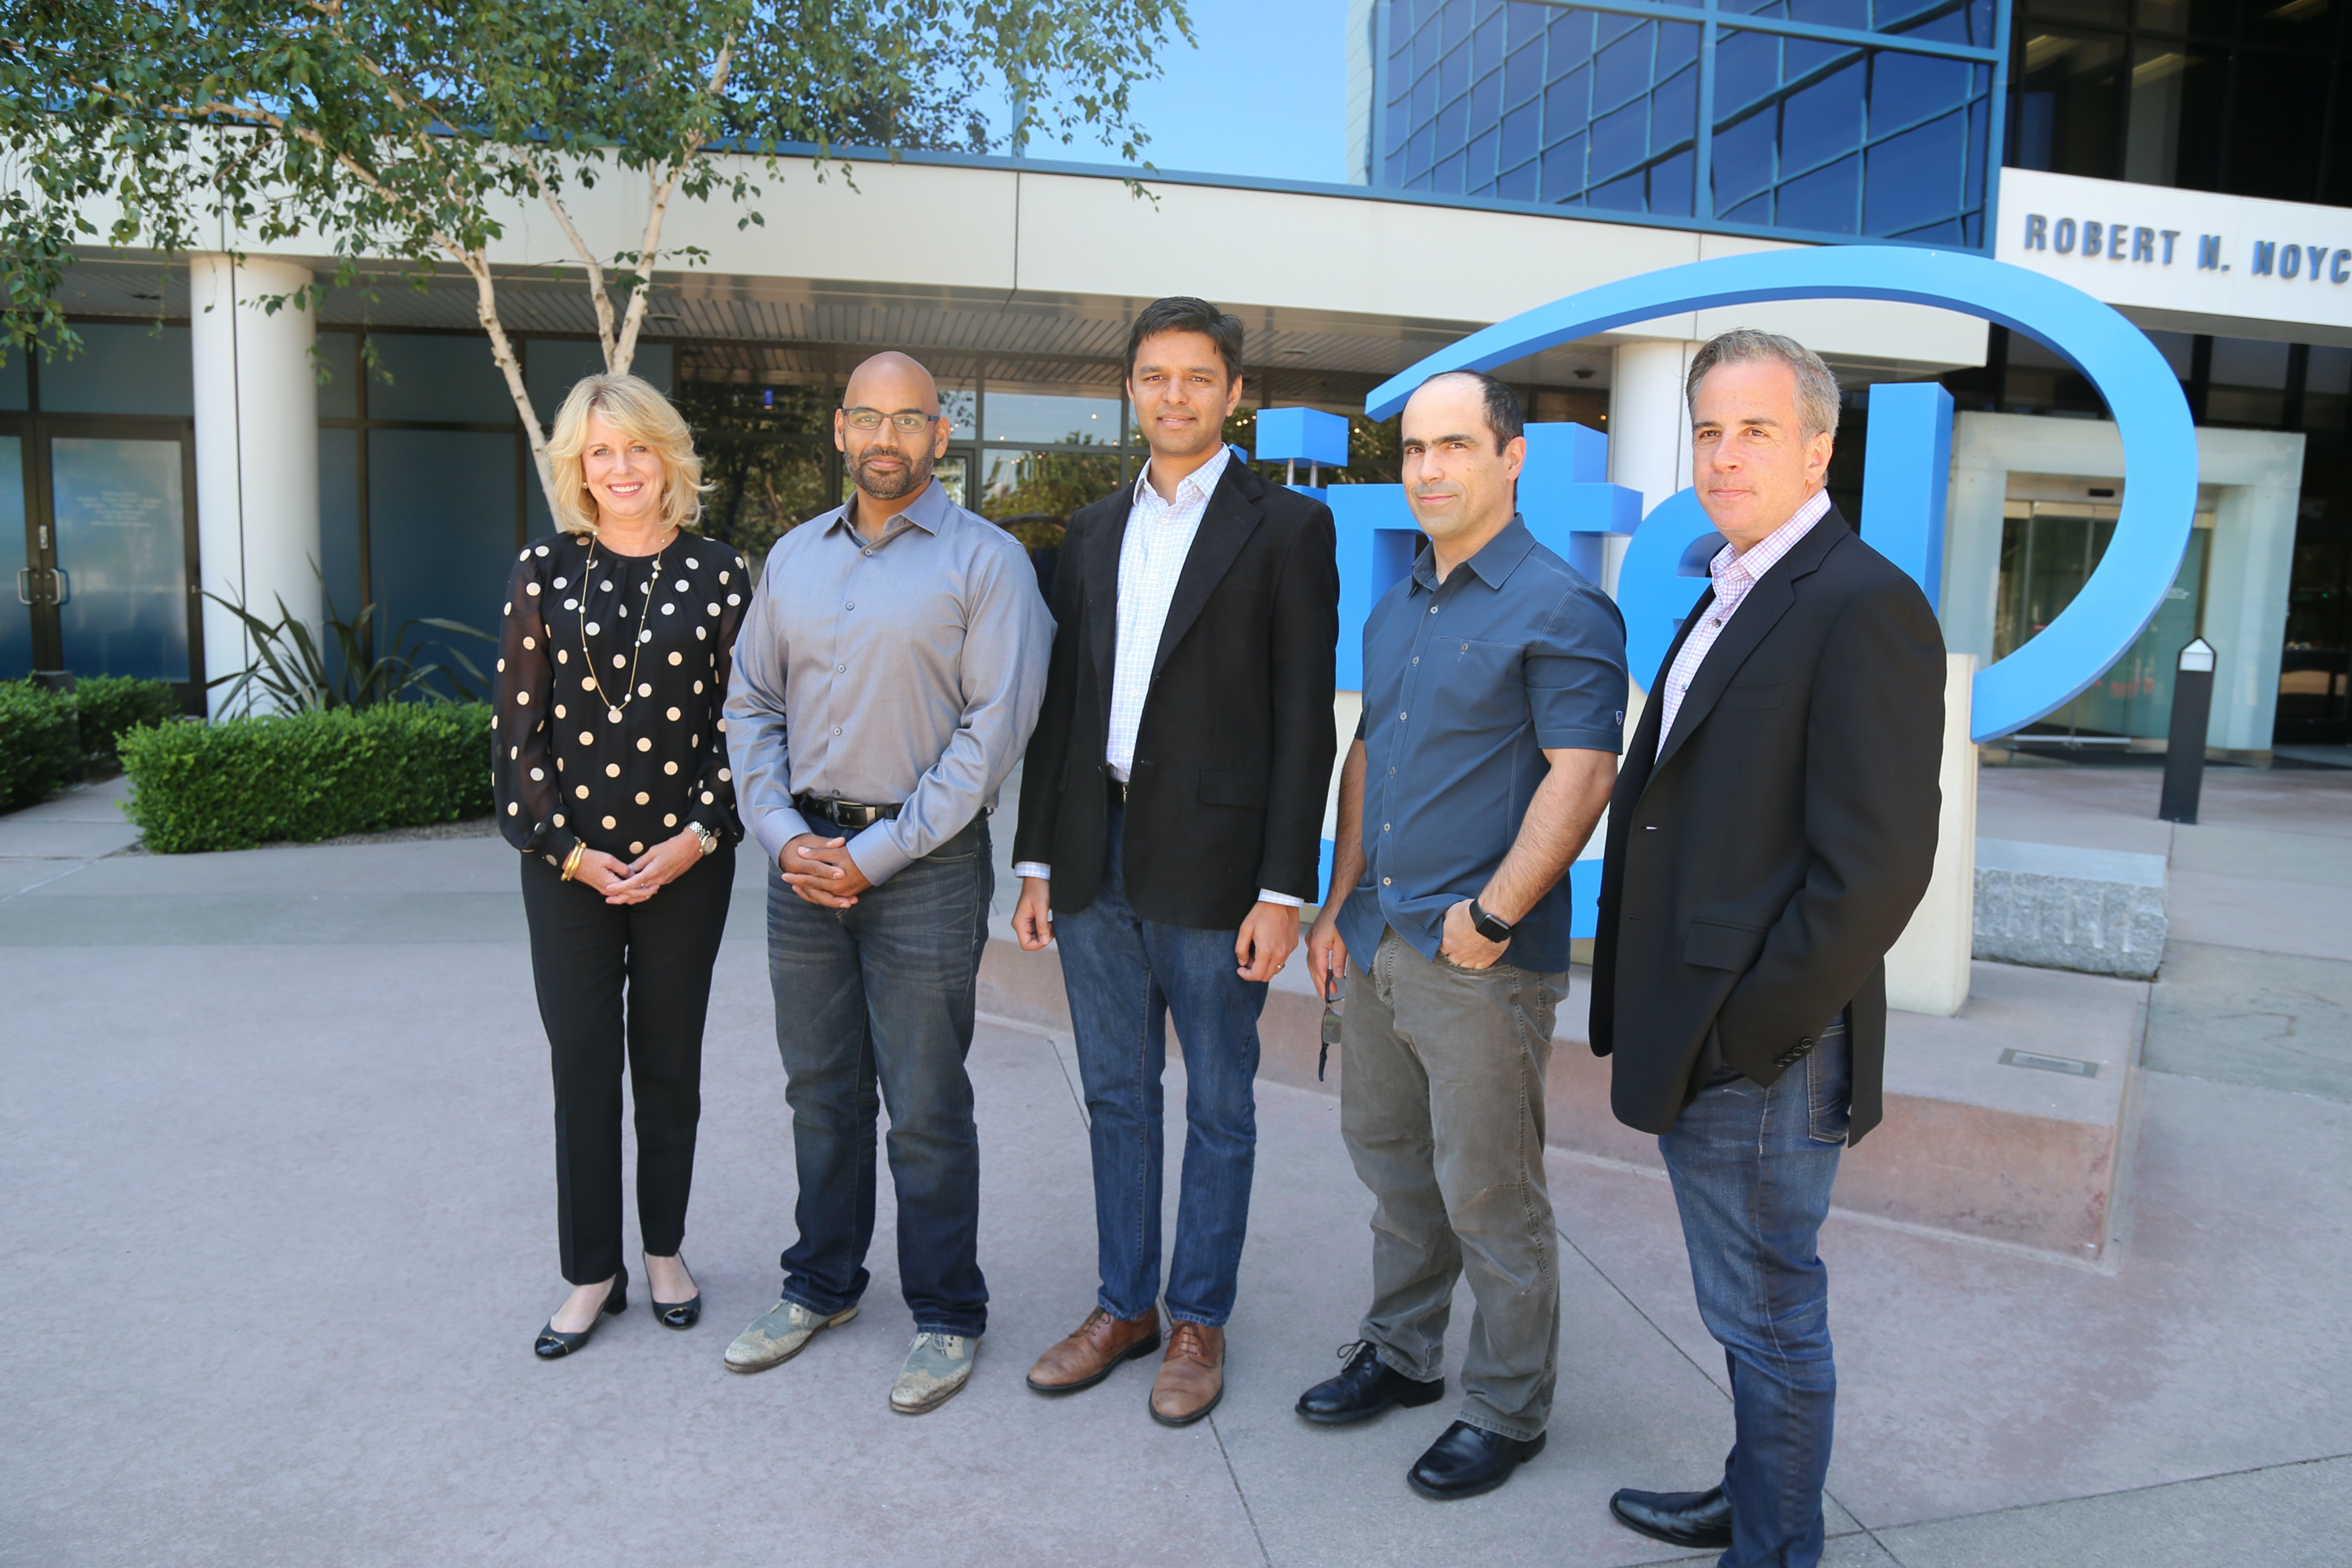 Intels Diane Bryant with Nervana's co-founders Naveen Rao, Arjun Bansal, Amir Khosrowshaki and Intel vice president Jason Waxman